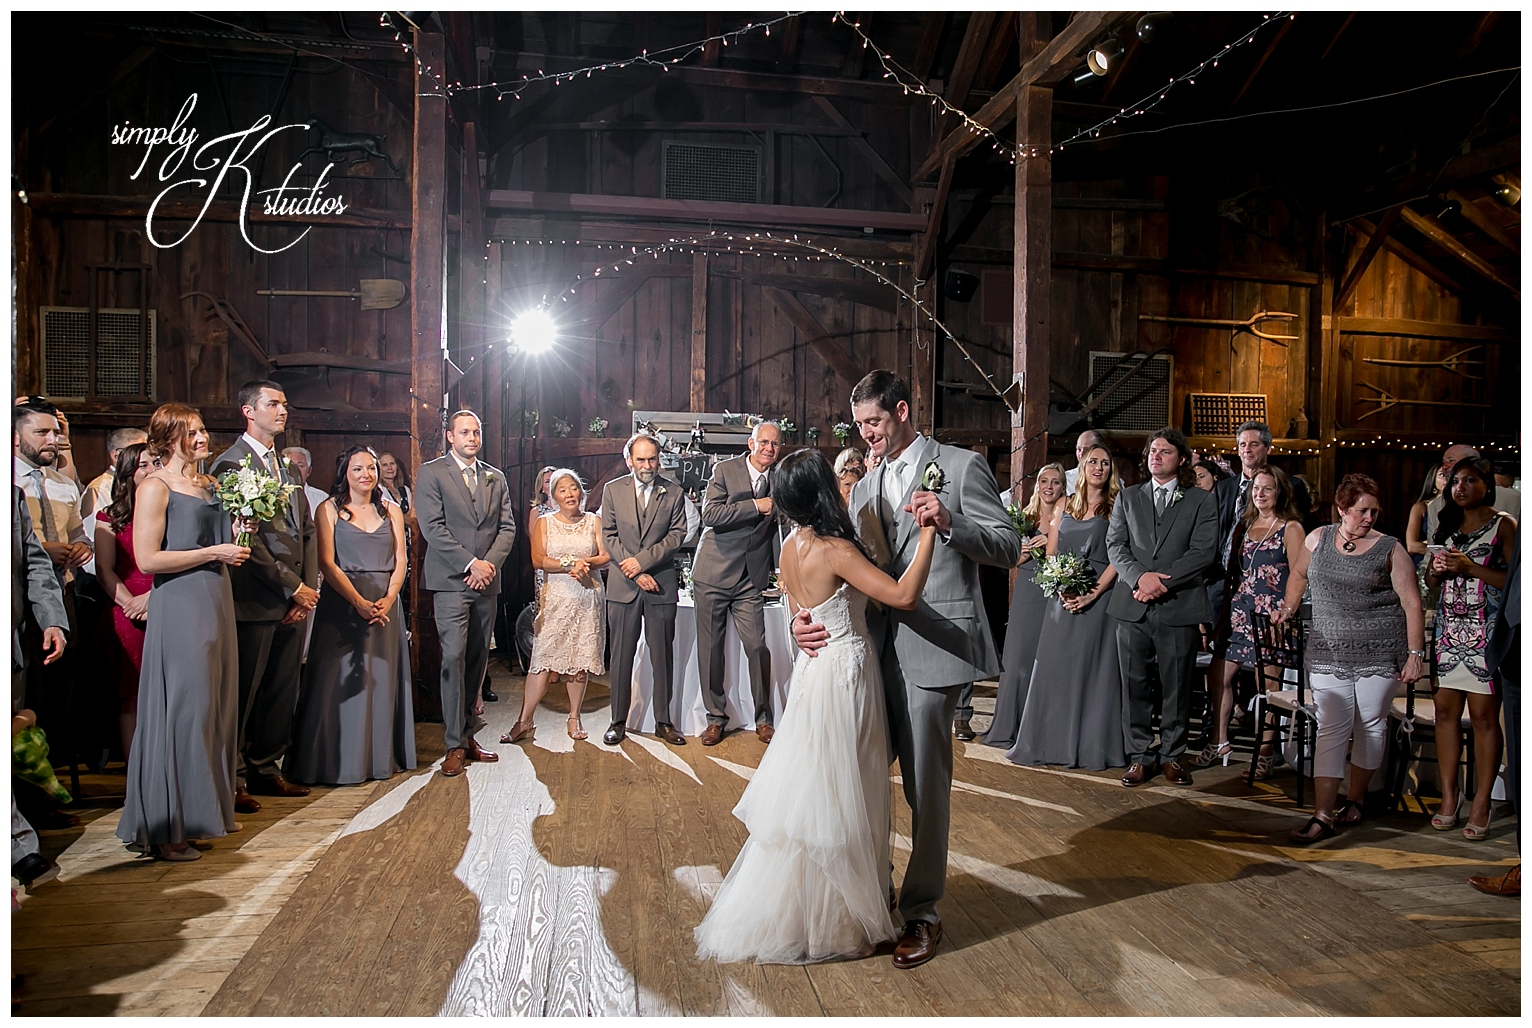 First Dance Photos at Webb Barn.jpg